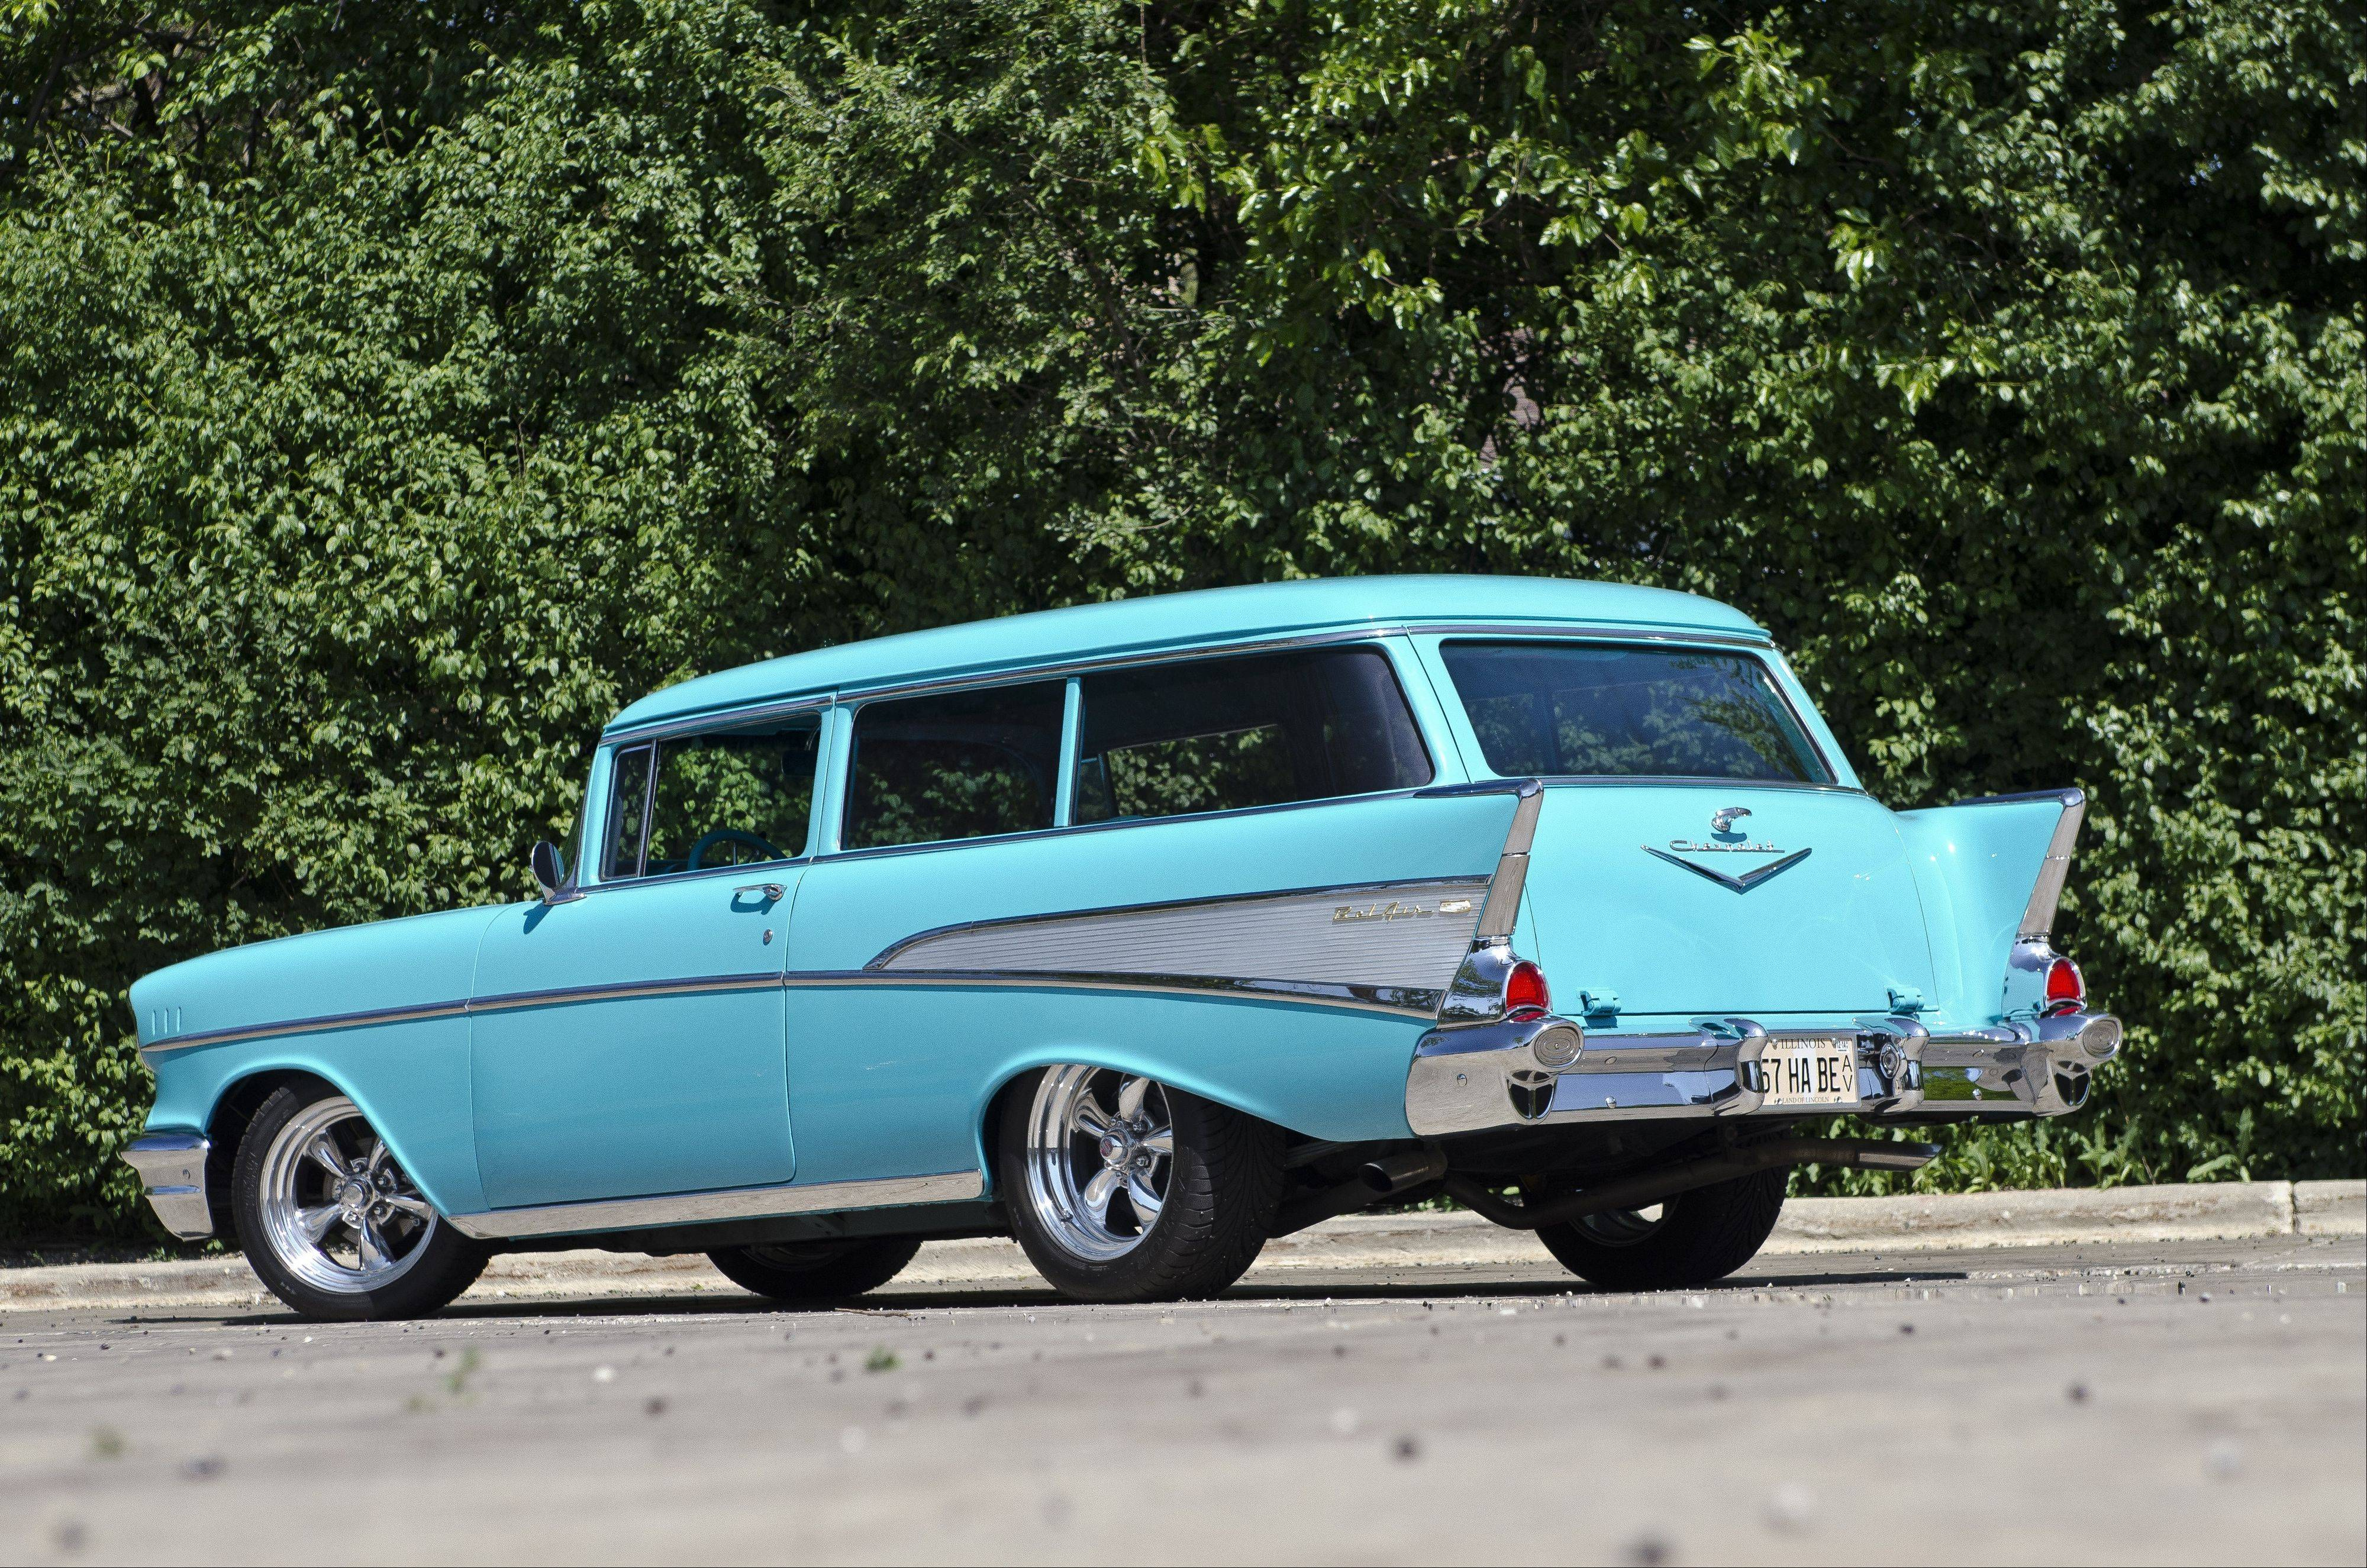 Skip Gallagher of Palatine customized this 1957 Chevrolet 210 wagon just to his liking.